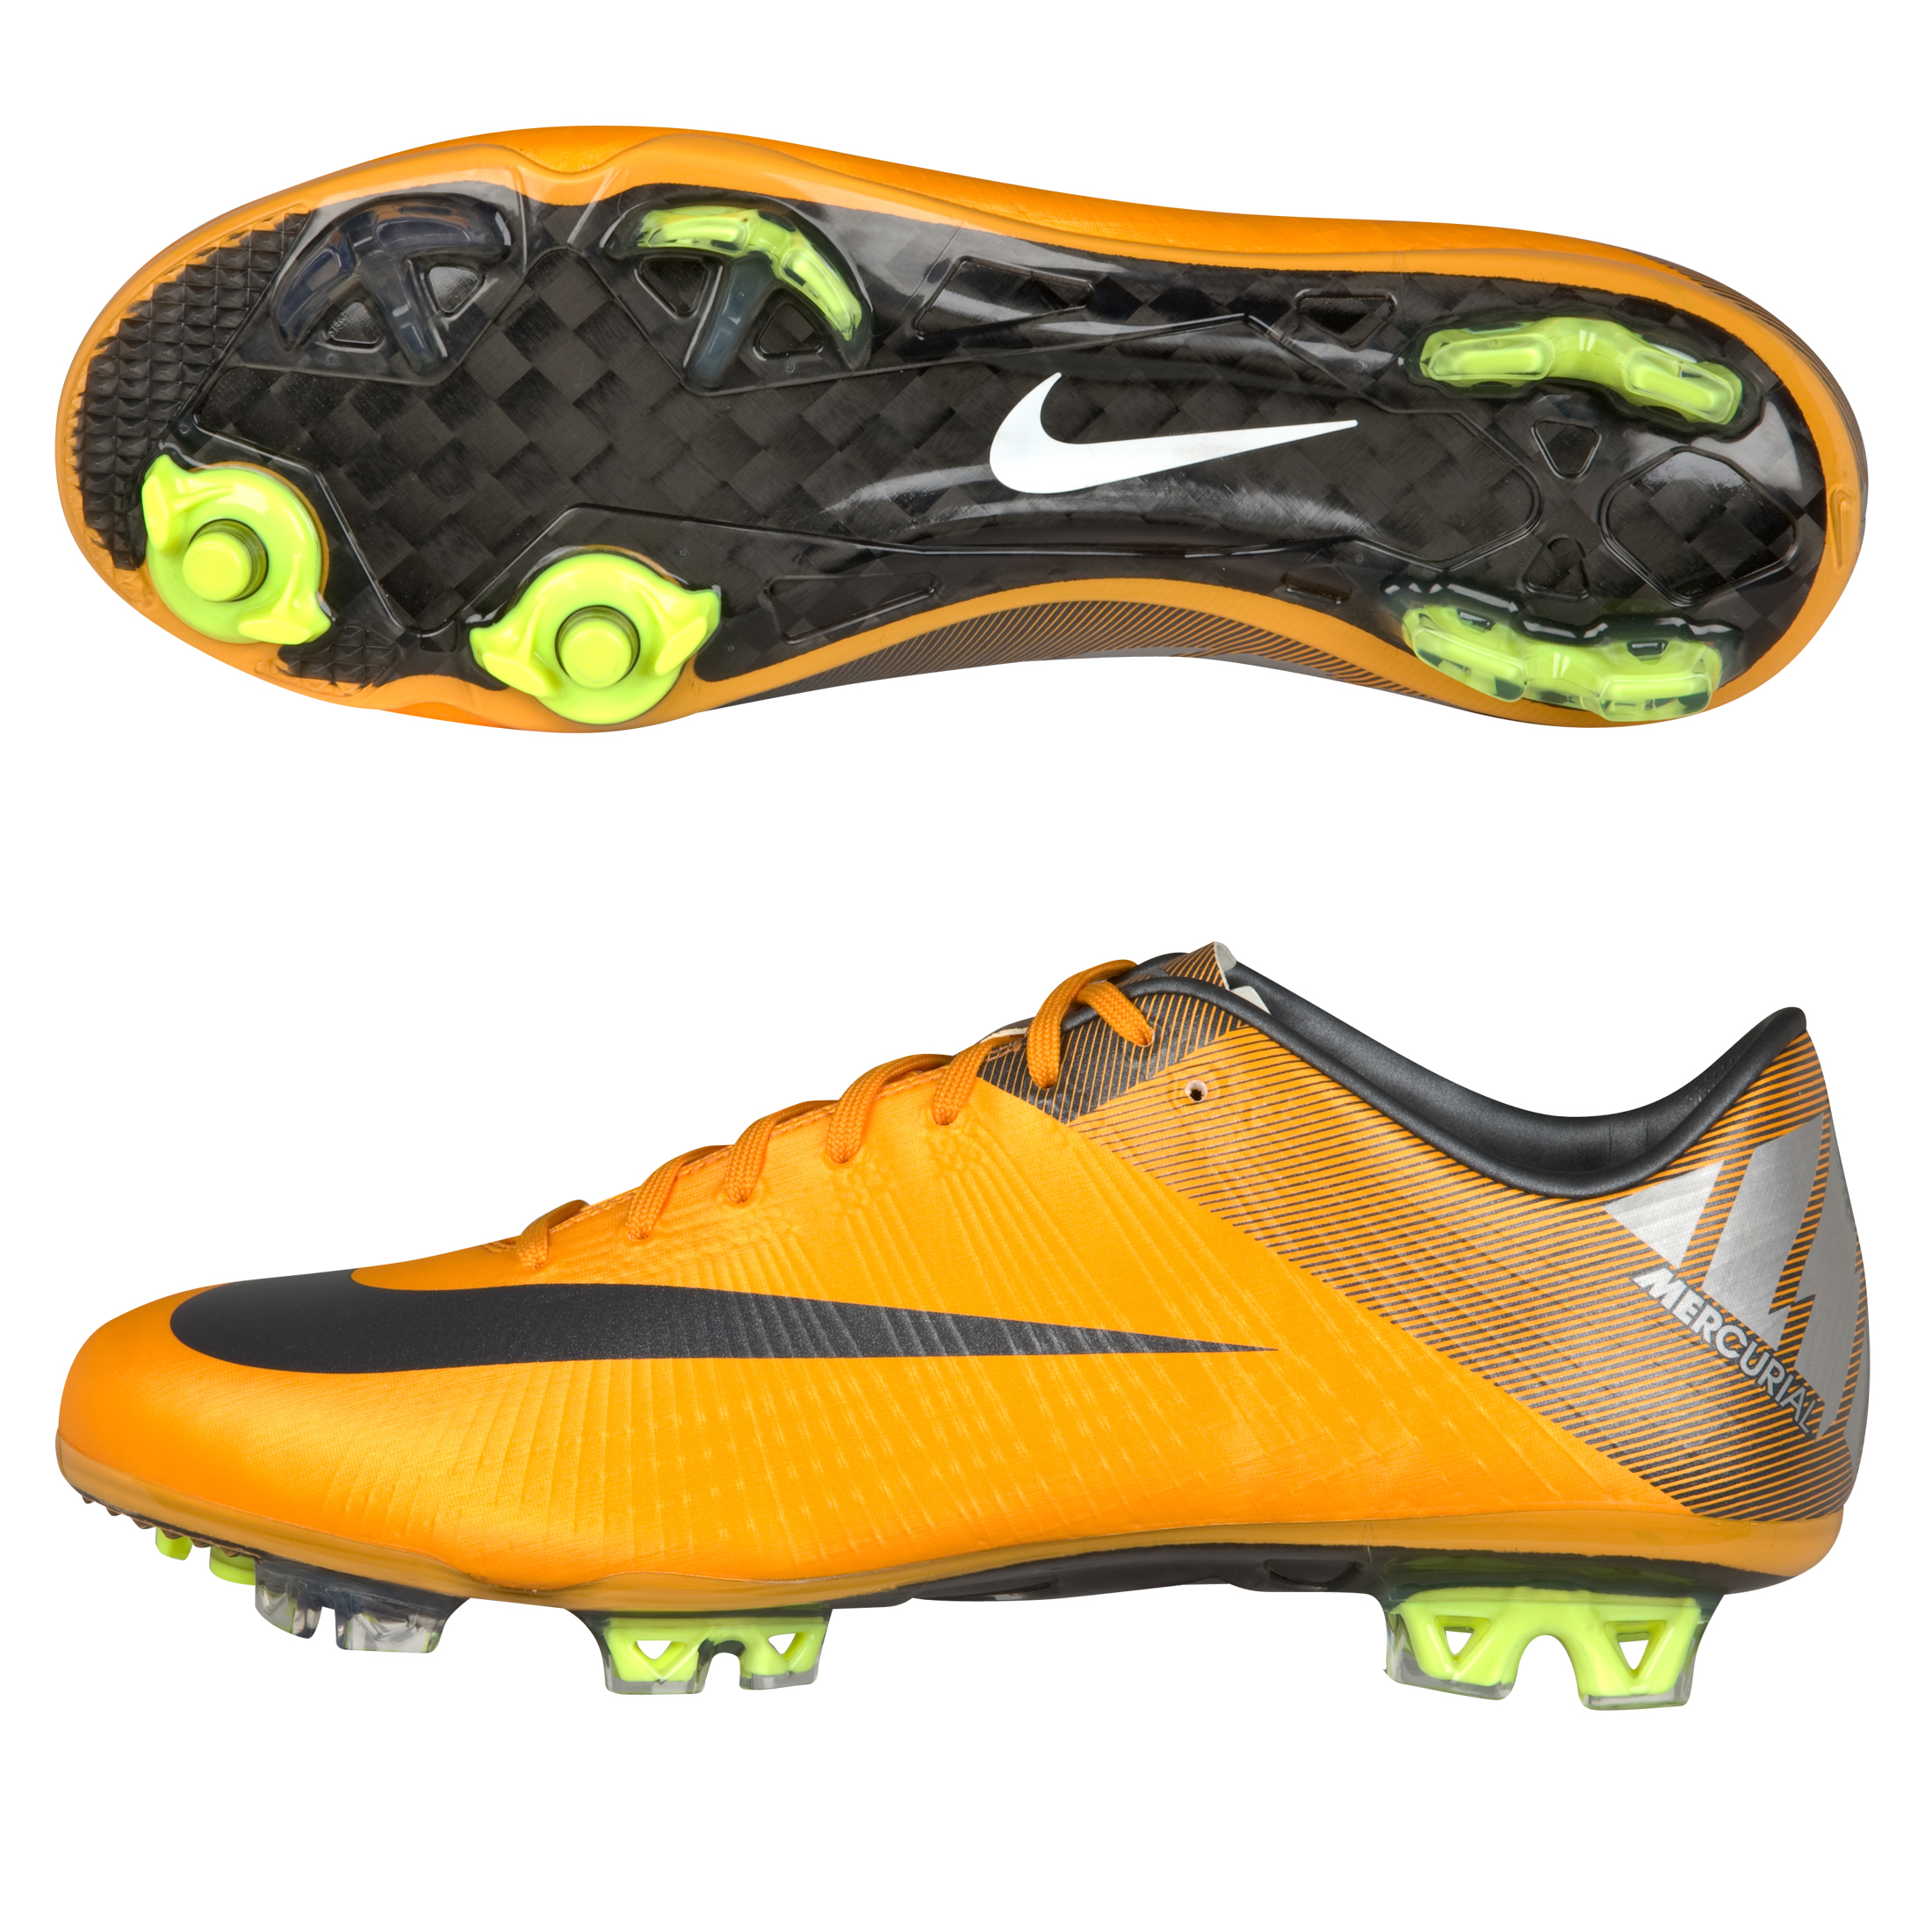 Nike Mercurial Superfly III Firm Ground Football Boots - Orange/Metallic/Silver